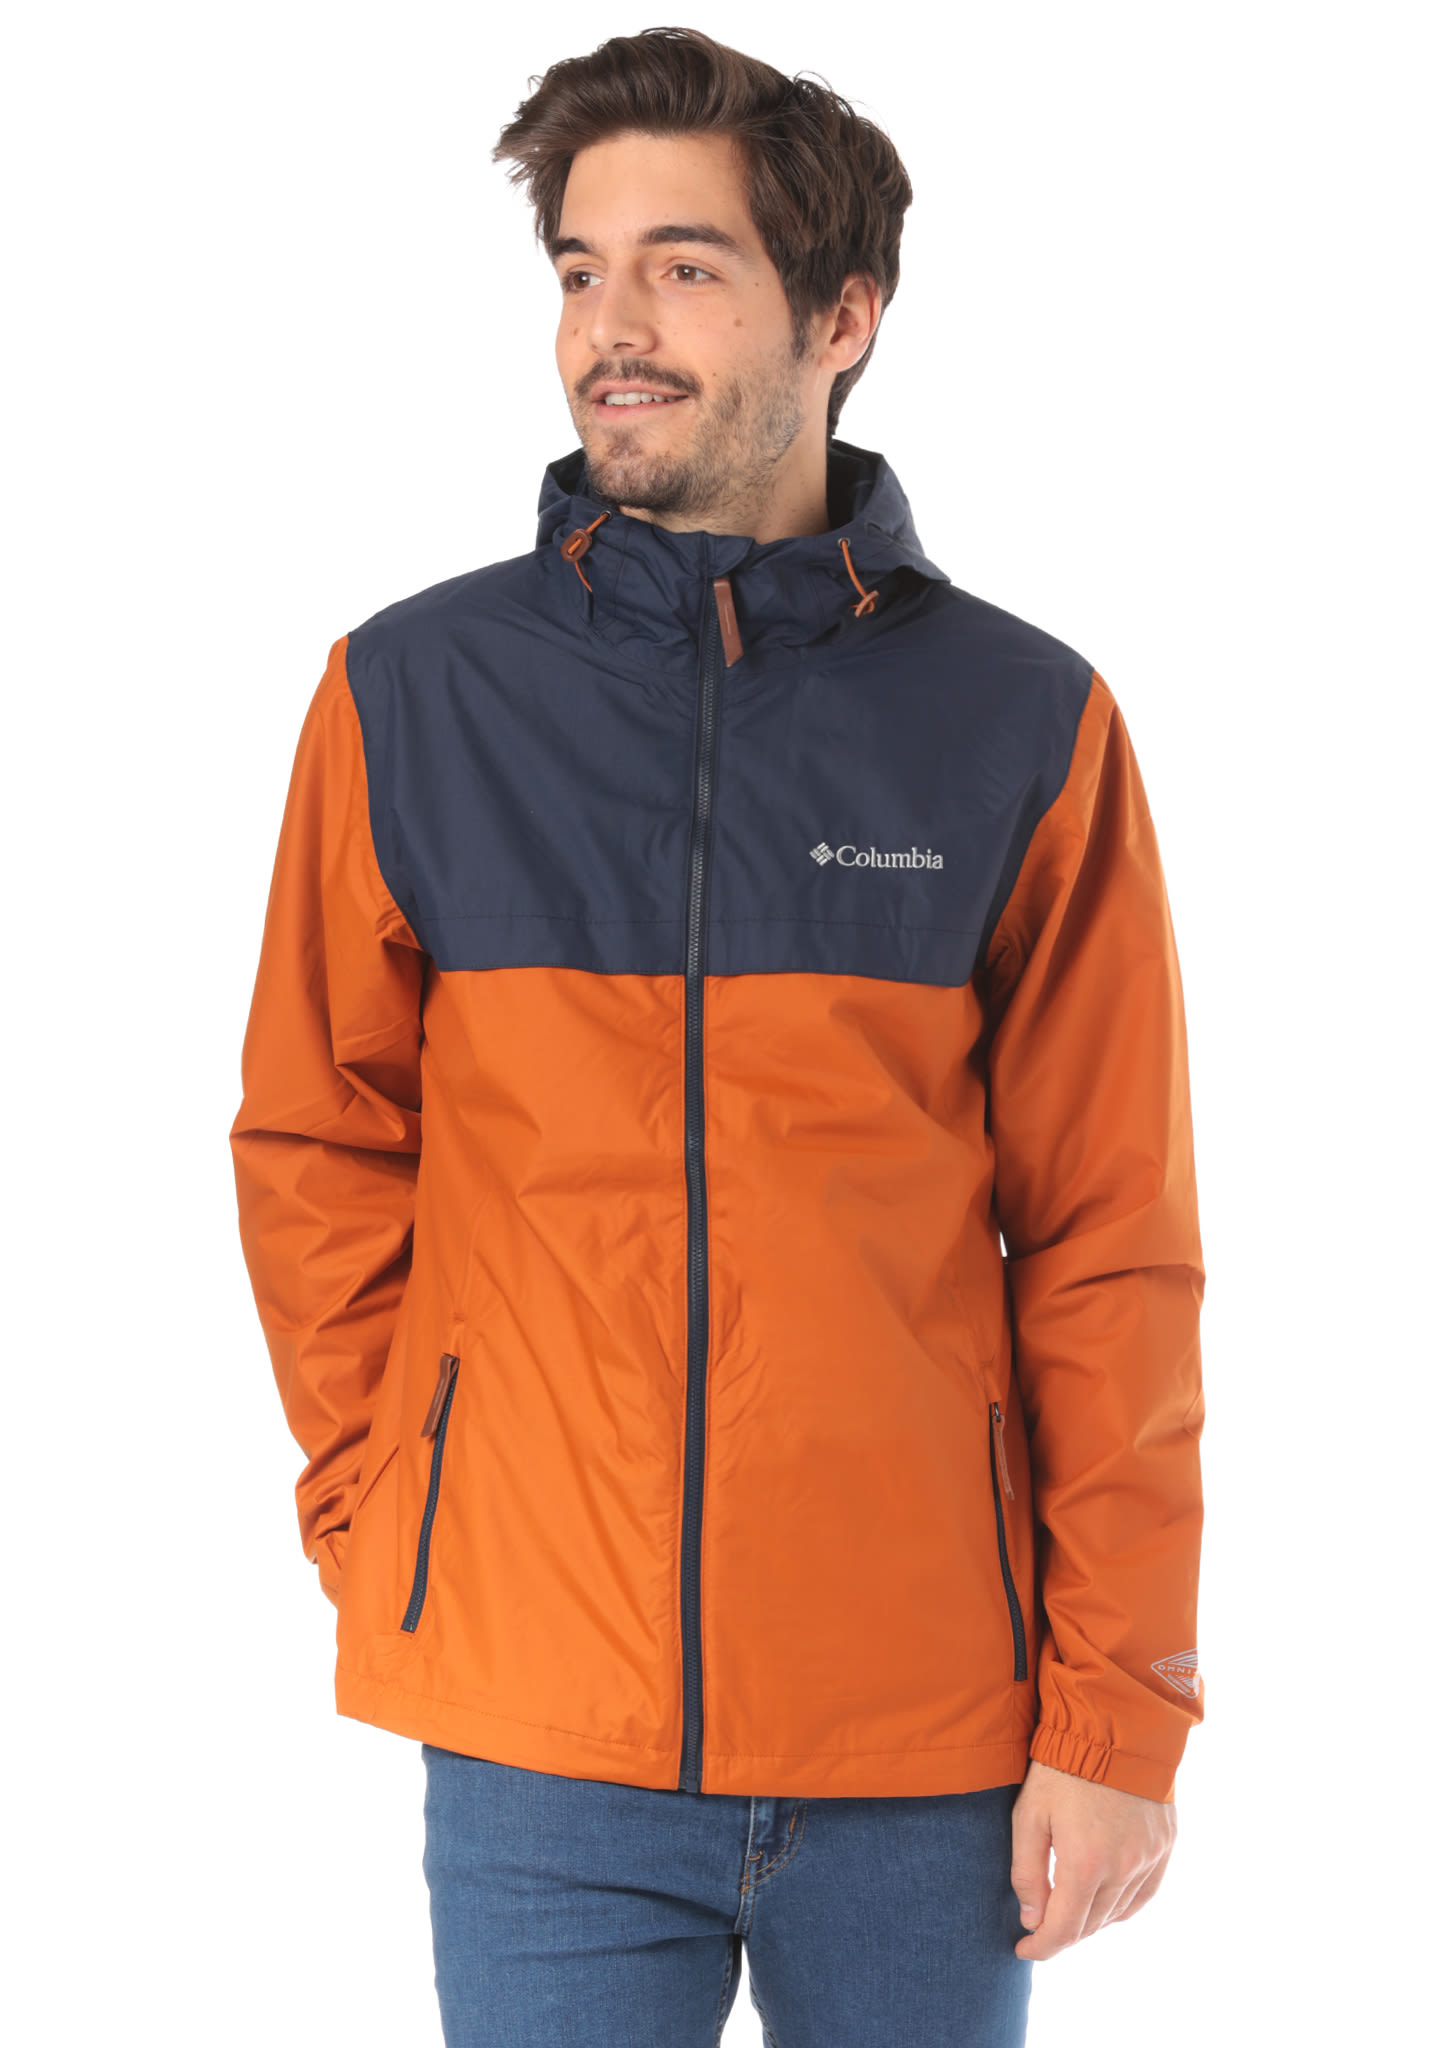 94c3cd2f37 Columbia Jones Ridge - Outdoorjacke für Herren - Orange - Planet Sports